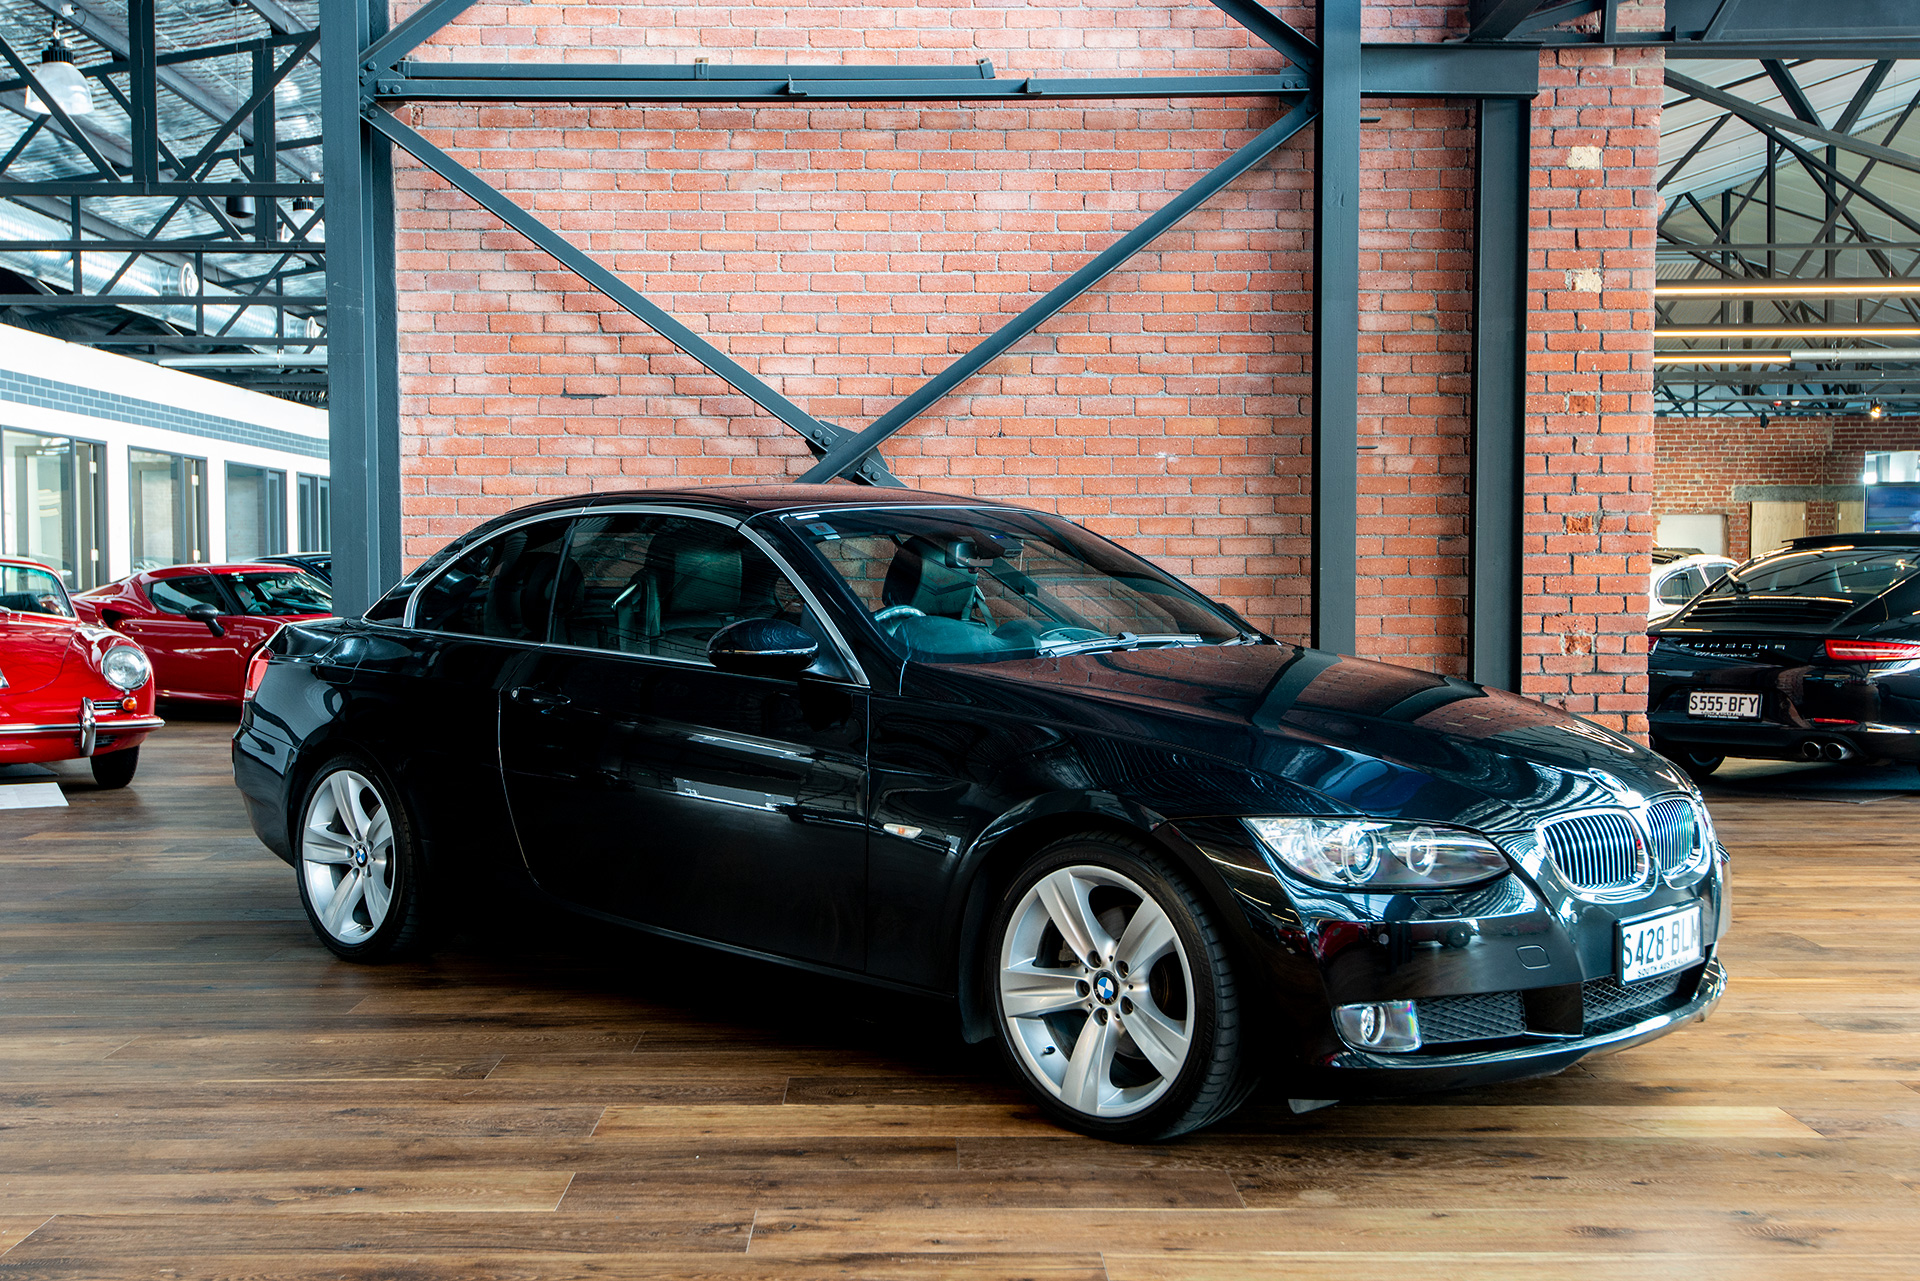 Bmw 325i For Sale >> 2008 BMW E93 325i Convertible - Richmonds - Classic and Prestige Cars - Storage and Sales ...